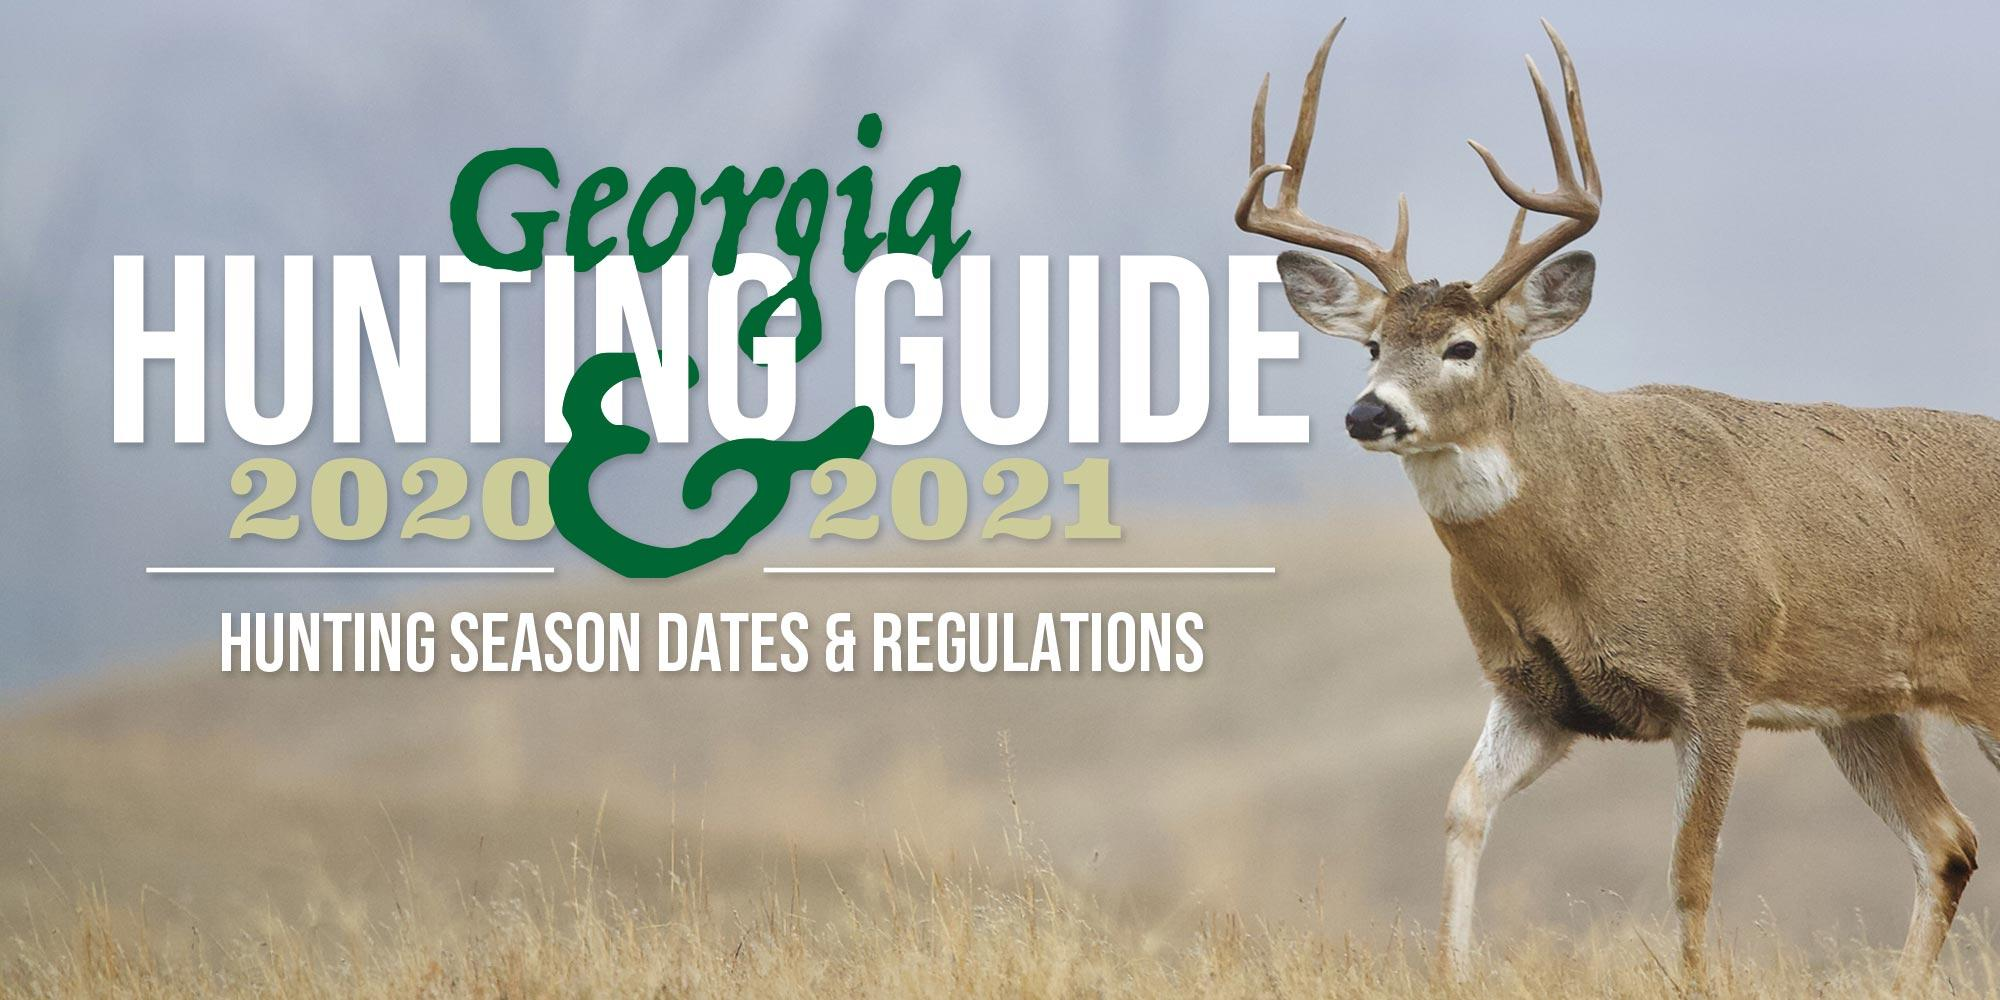 Georgia Hunting Season 2020-2021 - article image